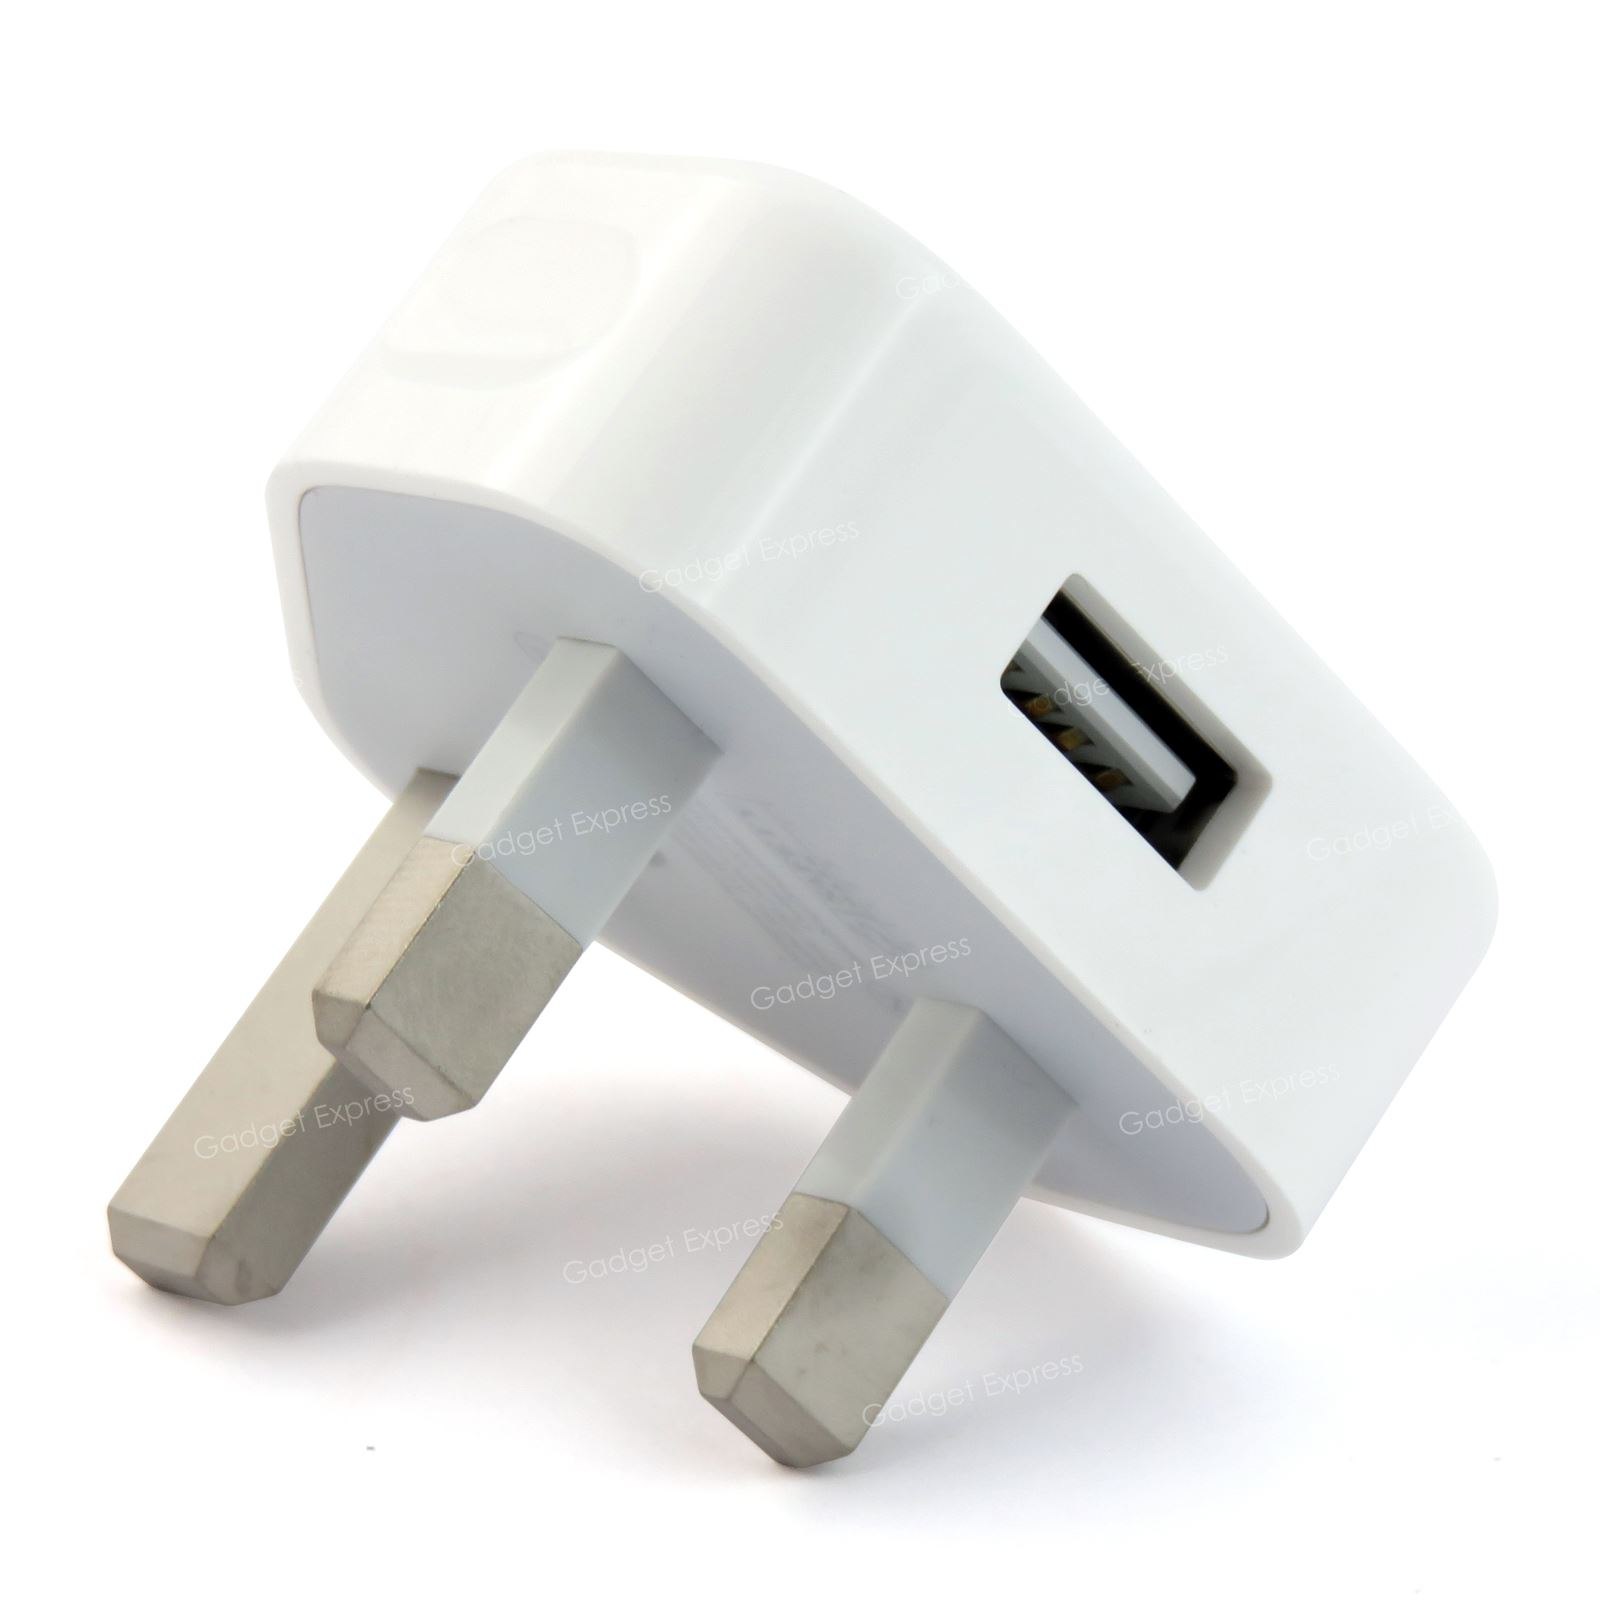 Power Adapter Apple Usb Plug Adapters On Royal Caribbean Ps4 Wheel Adapter Adapter Esata Hdmi: Genuine Apple UK Mains Plug A1399 5W USB Mains Adapter